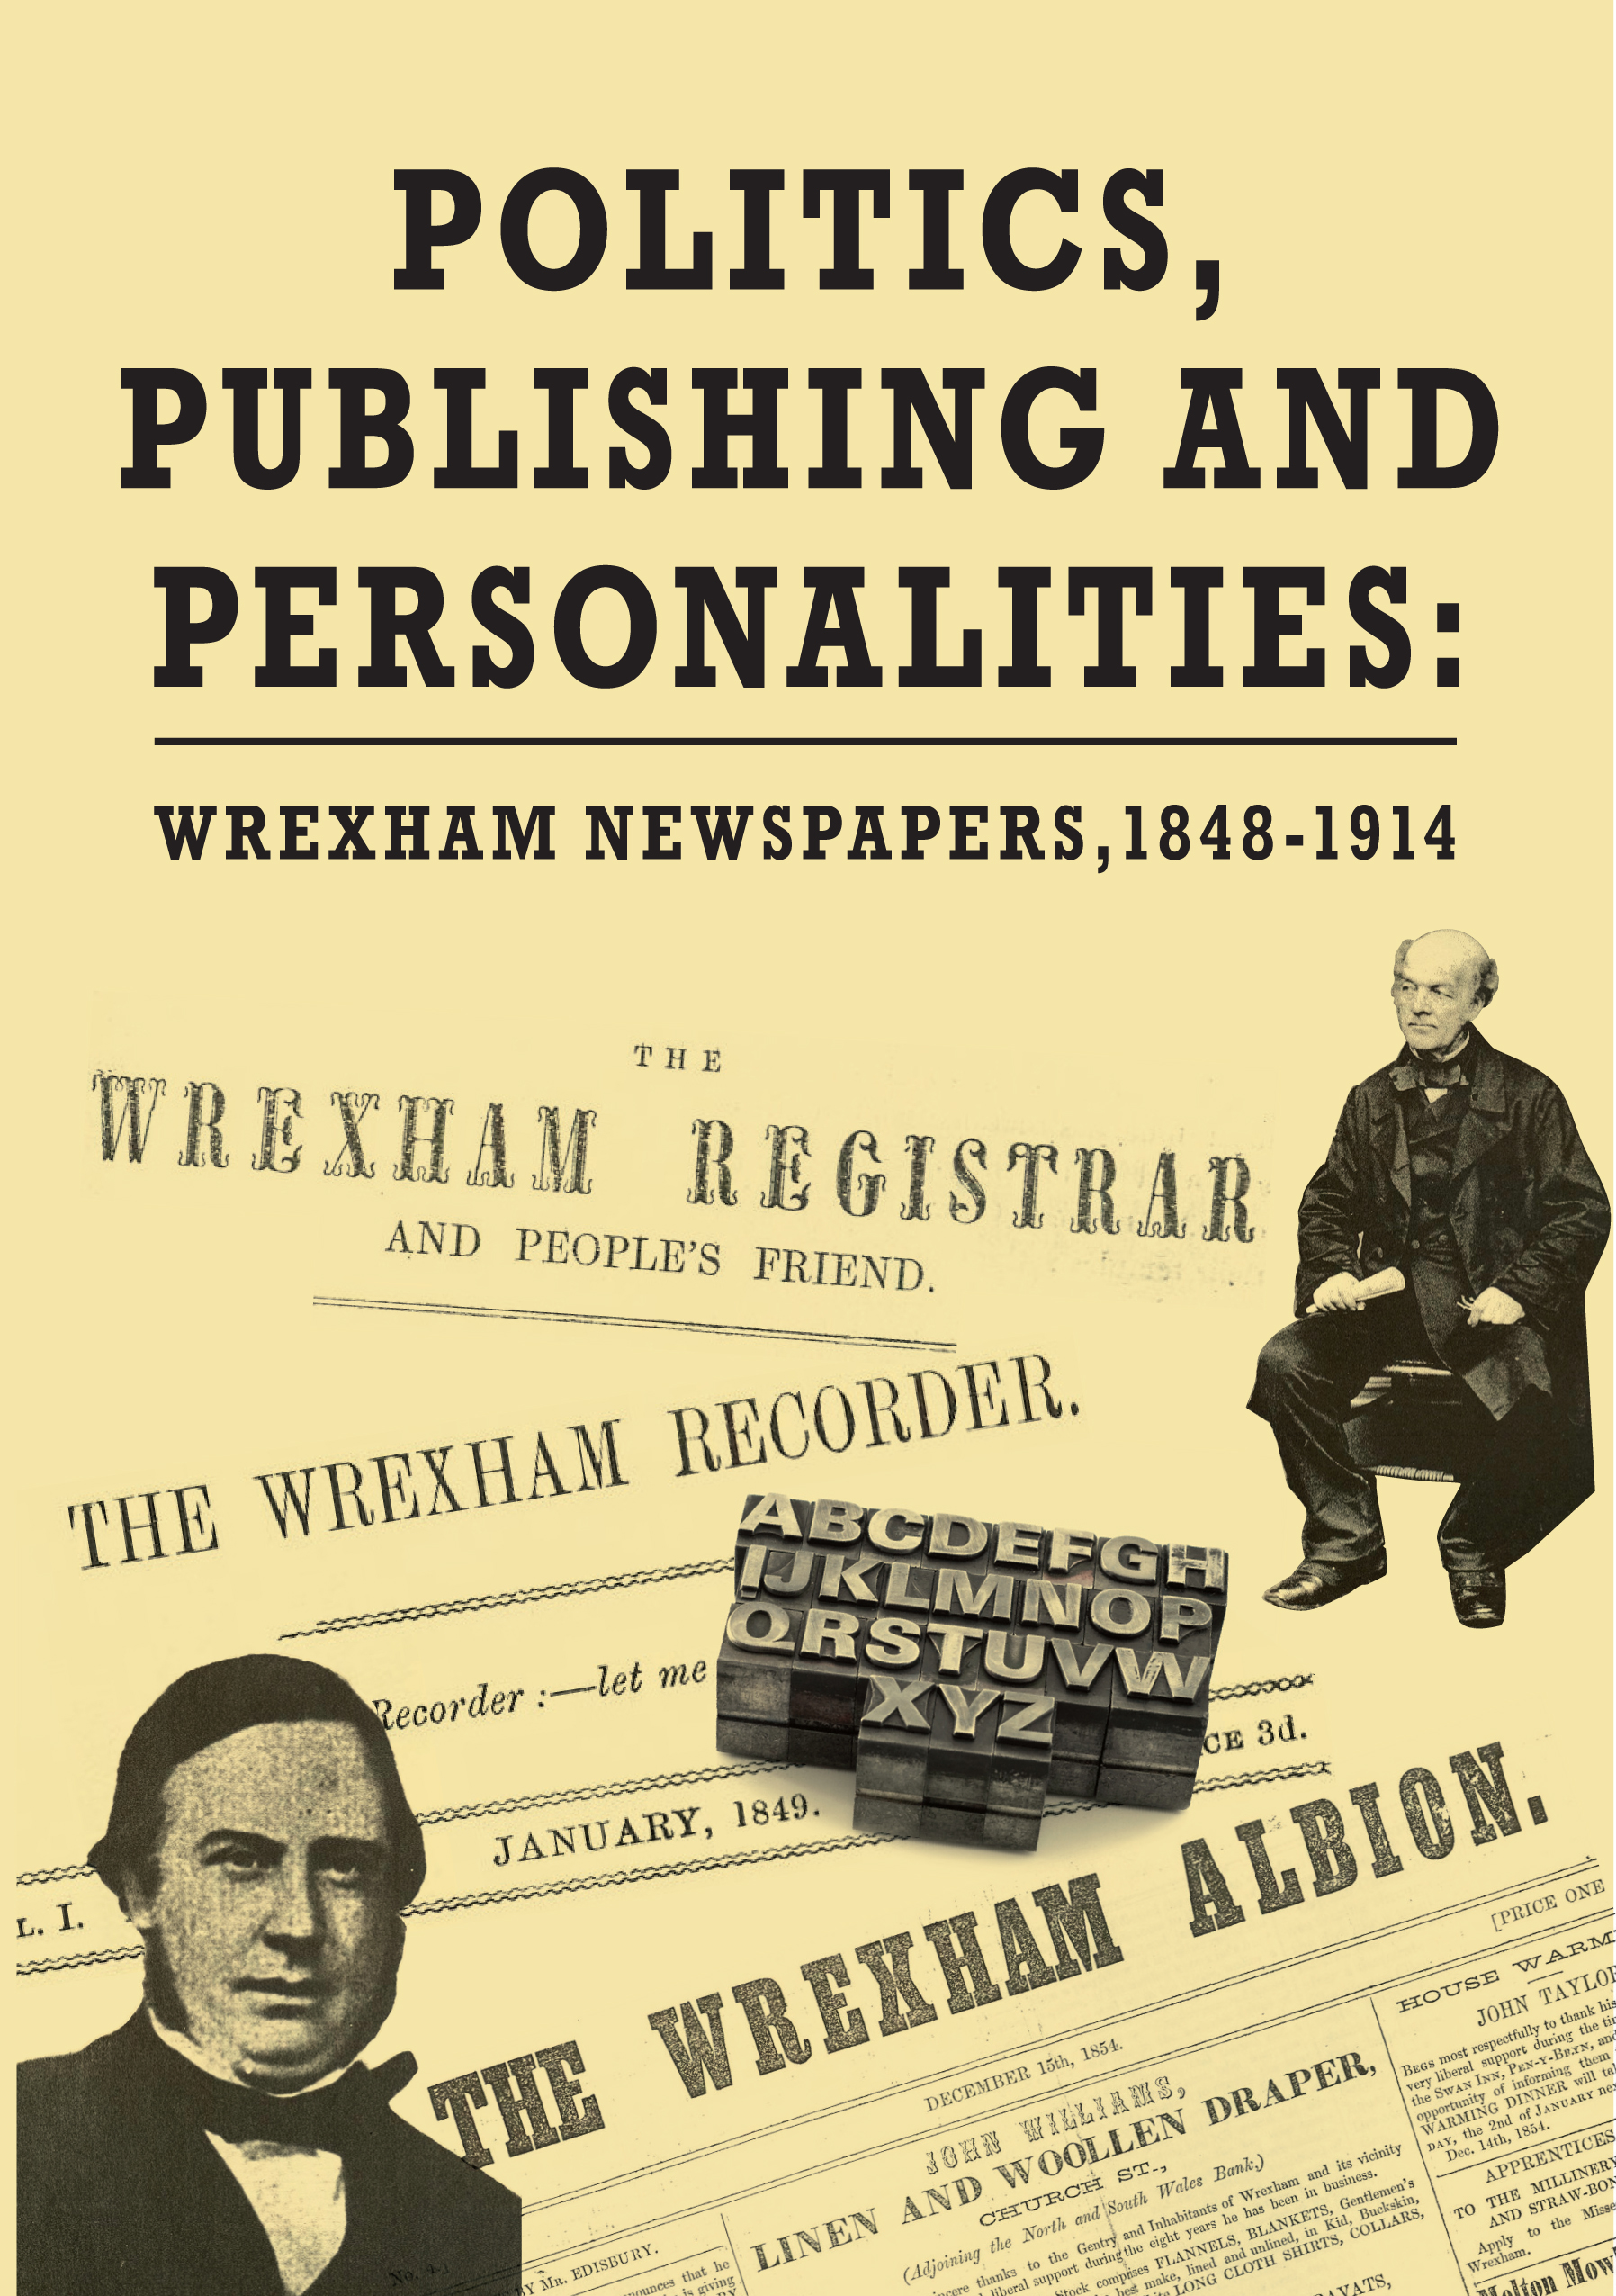 Politics, Publishing and Personalities: Wrexham Newspapers 1848-1914